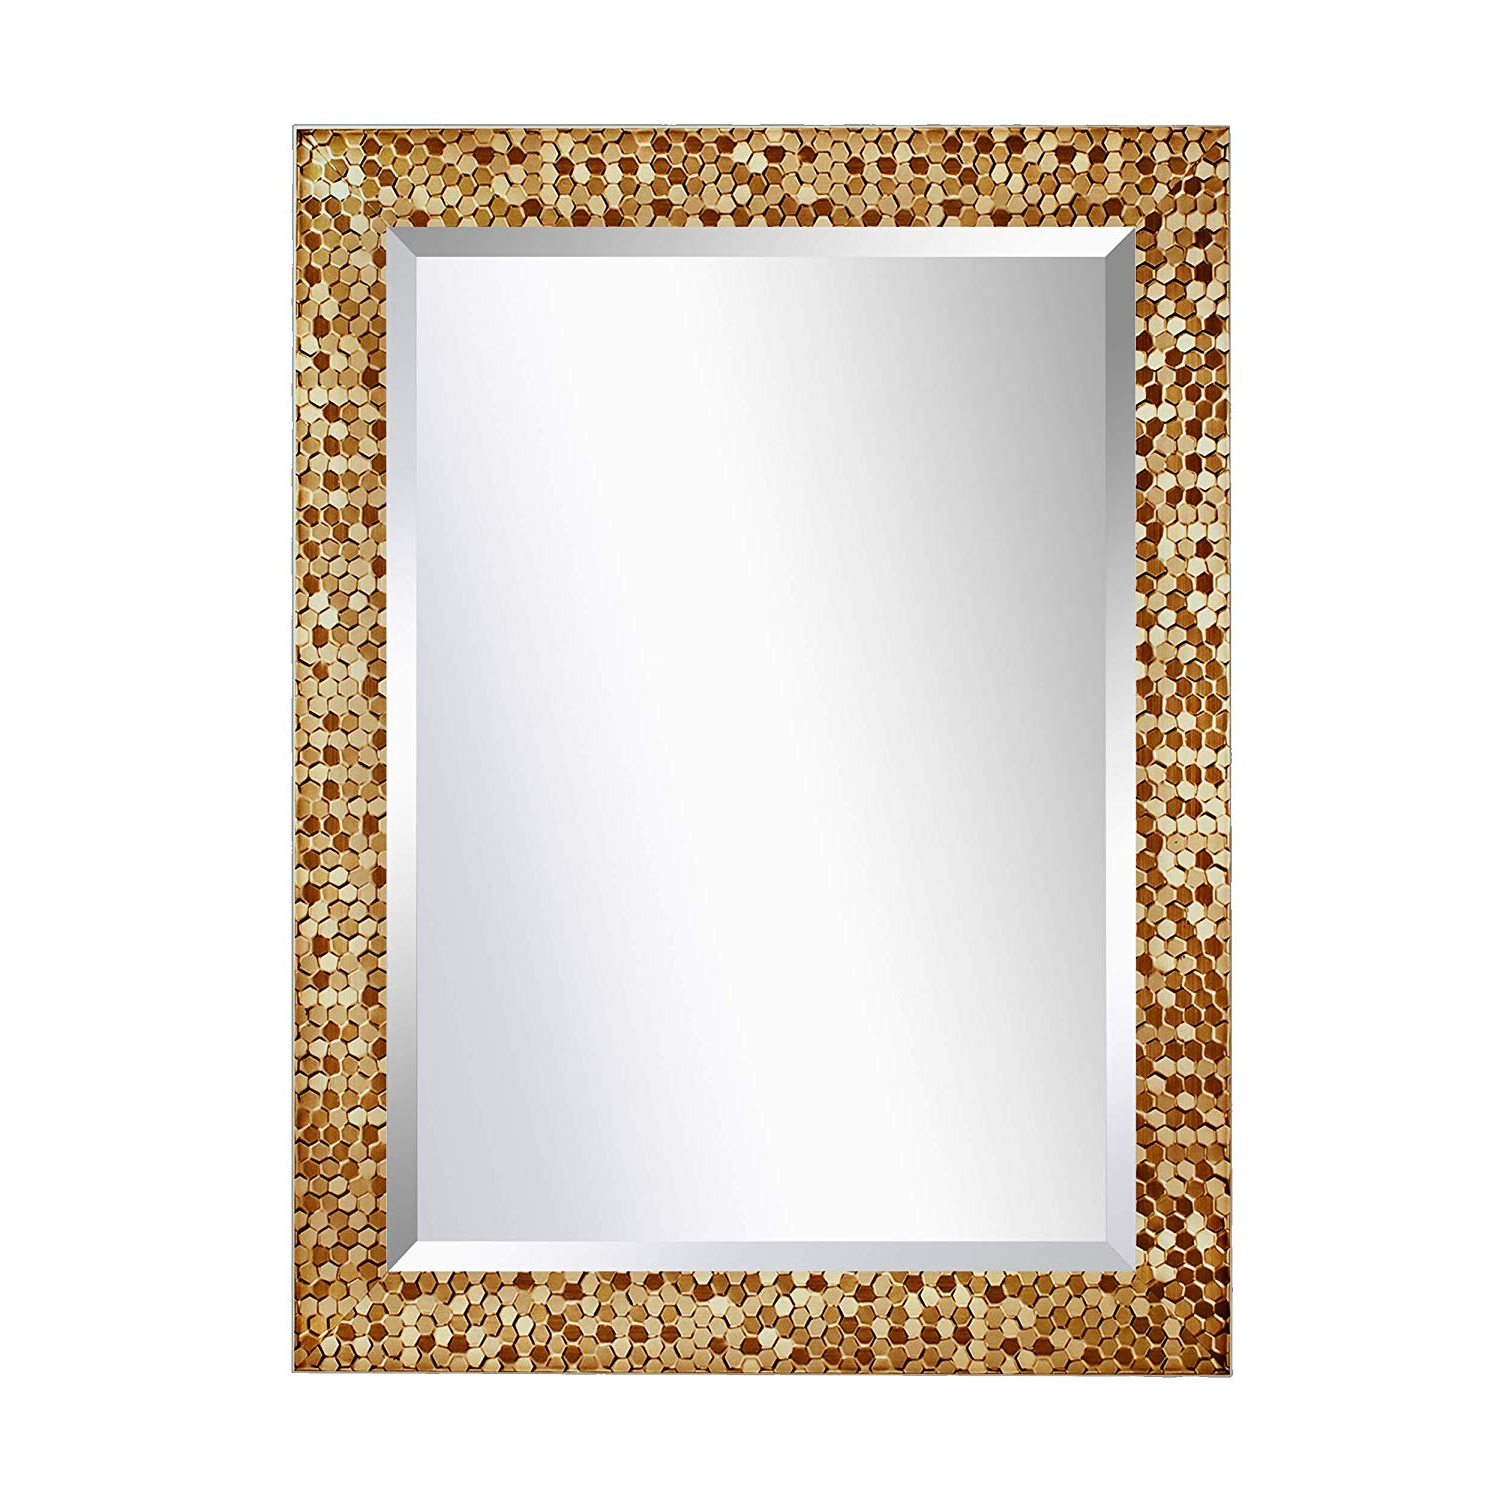 Popular Mirror Trend Gold Mosaic Design Framed Decorative Wall Mirror Large Rectangle Mirror For Living Room, Bedroom, Vanity, Dining Room, Bathroom Hangs In Horizontal Decorative Wall Mirrors (View 2 of 20)